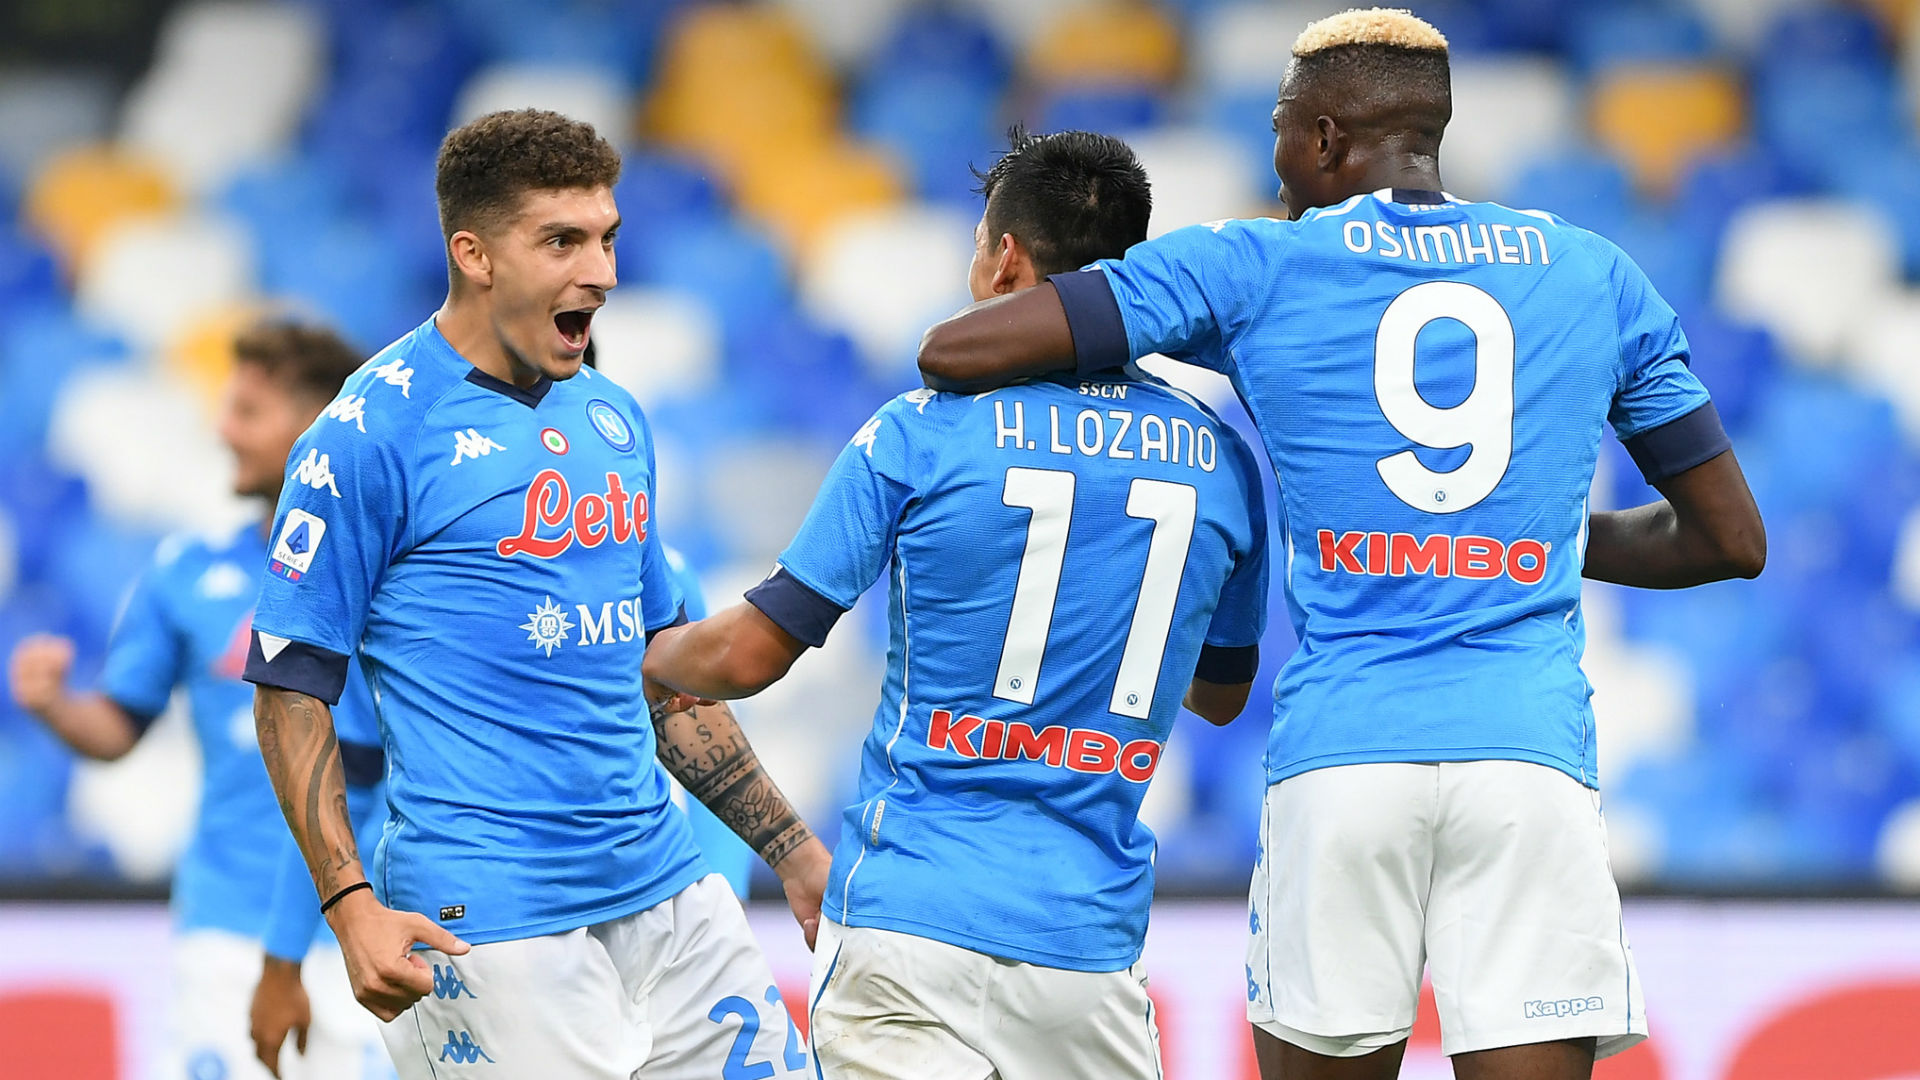 Unlucky Osimhen Grabs Assist As Napoli Demolish Genoa Goal Com